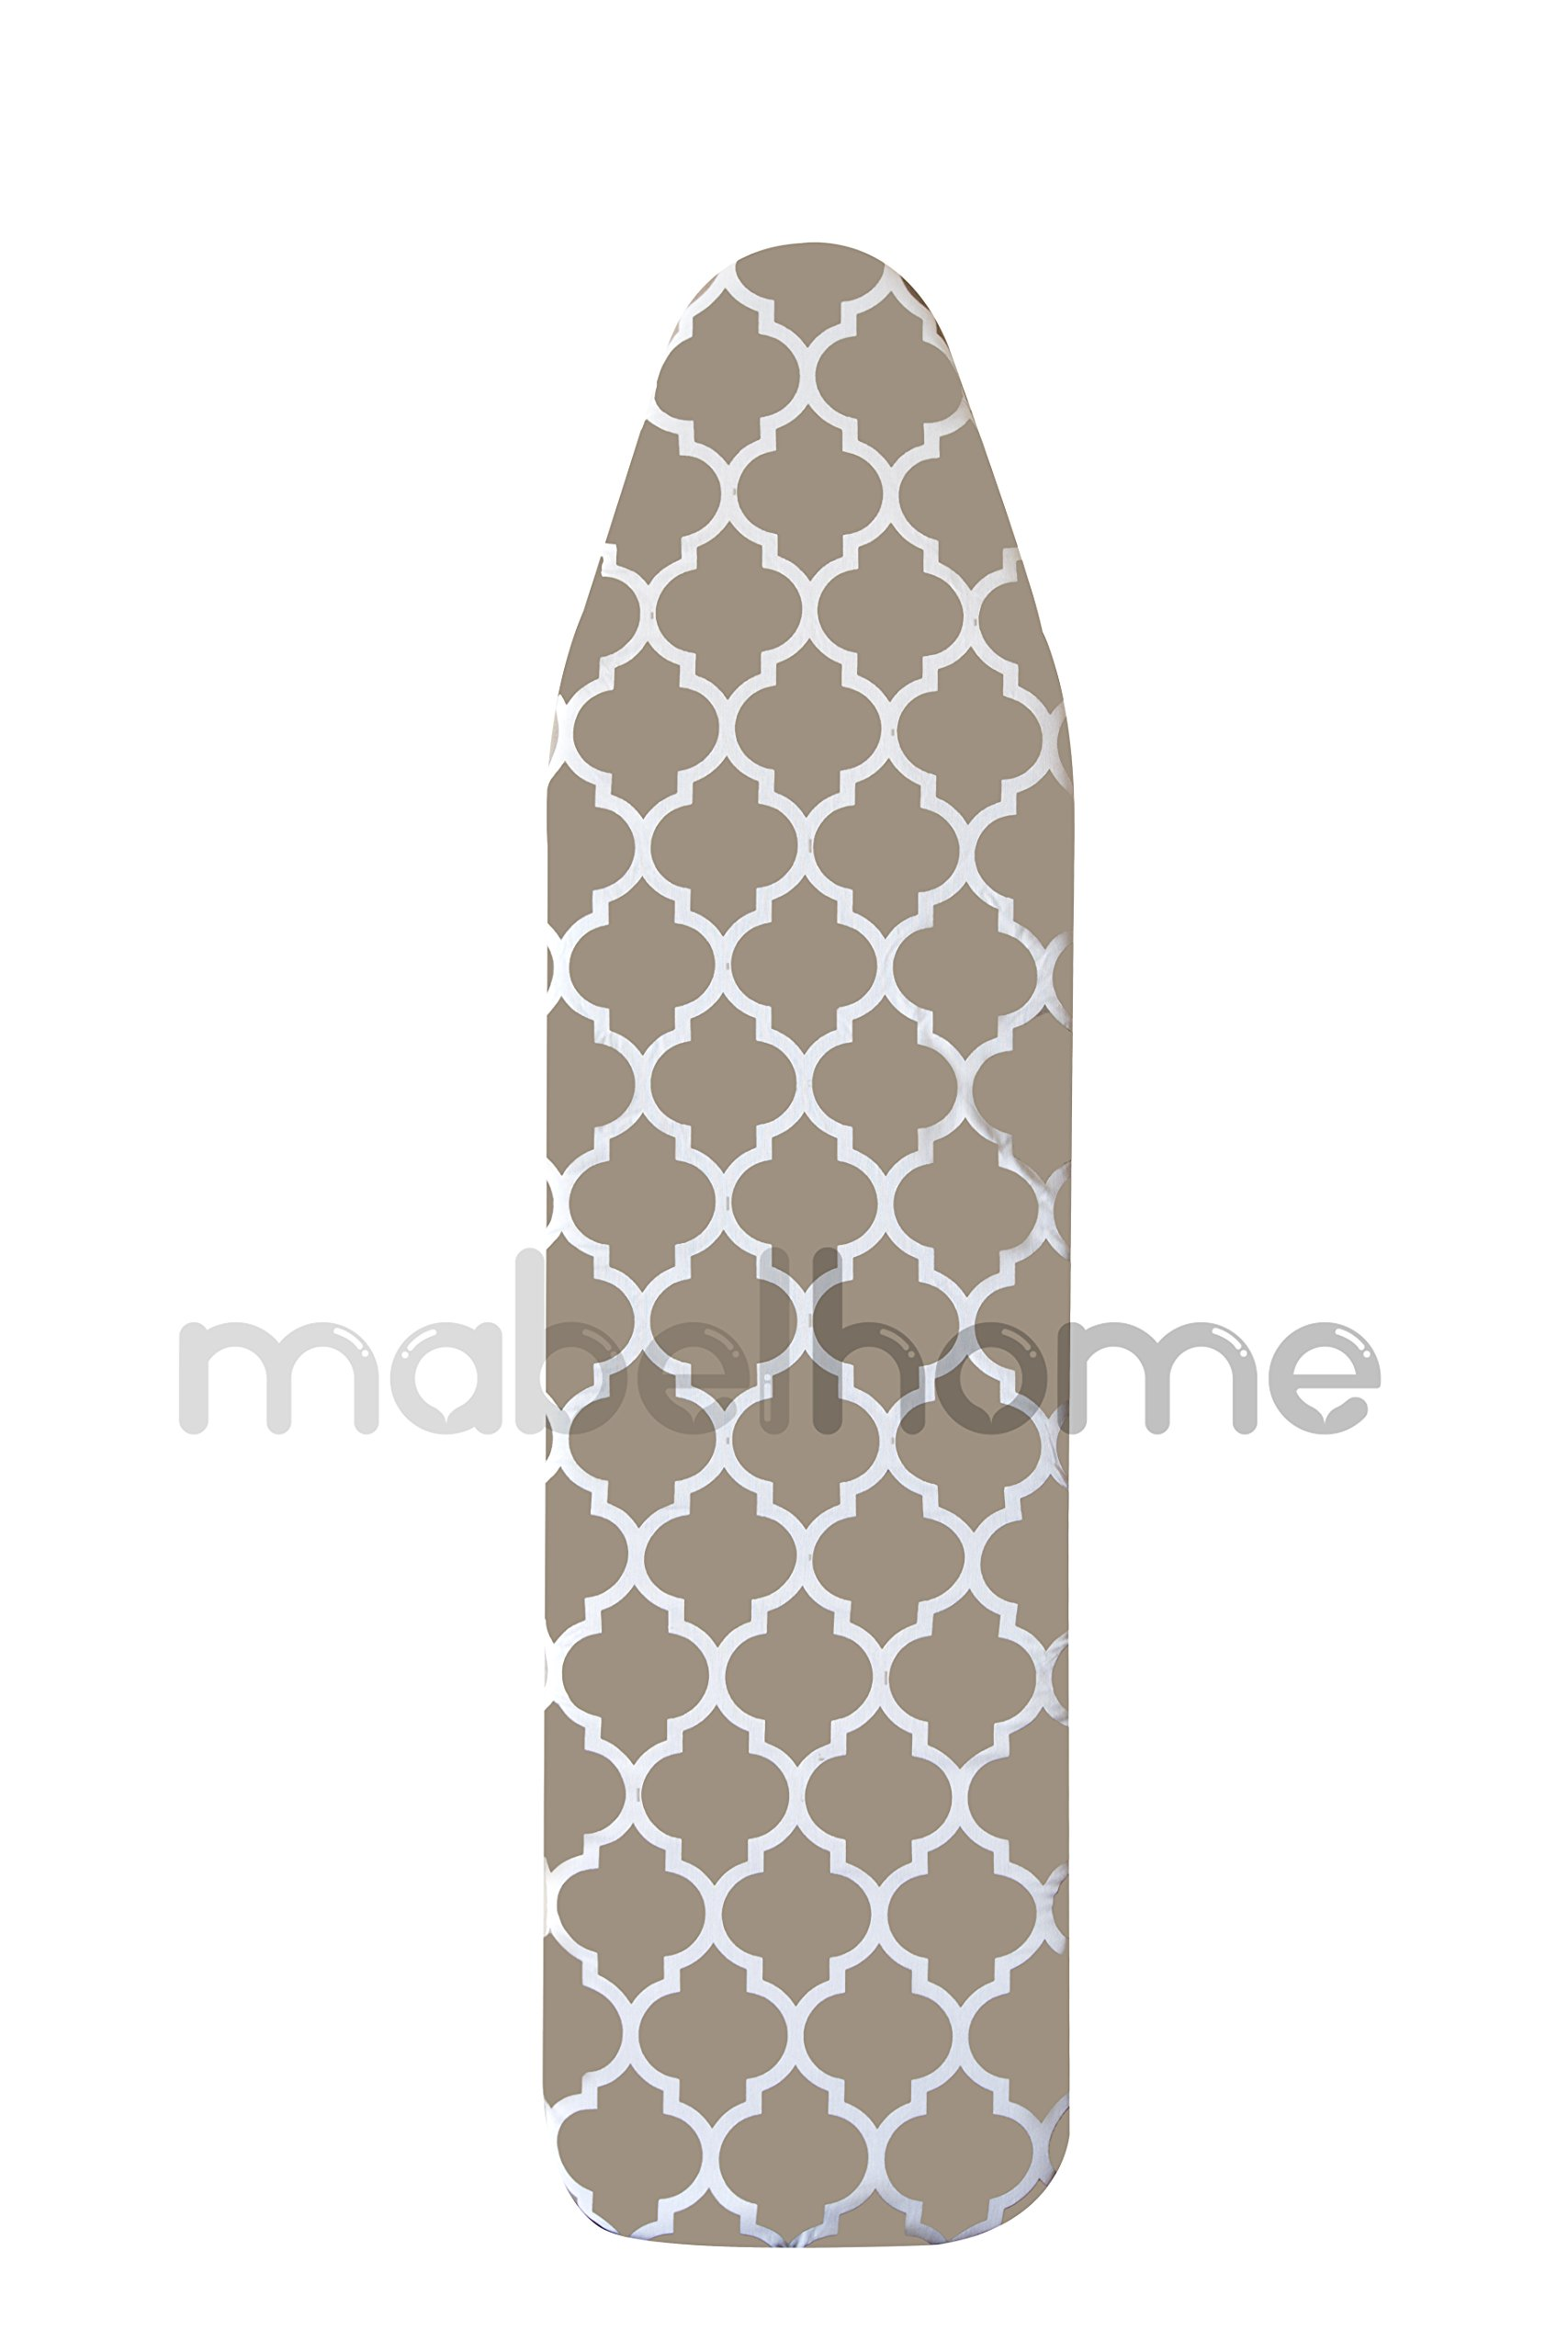 Mabel Home ironing Board Padded Cover, 100% Cotton, 54'' x 15'' - Light-Brown/White Patterned by Mabel Home